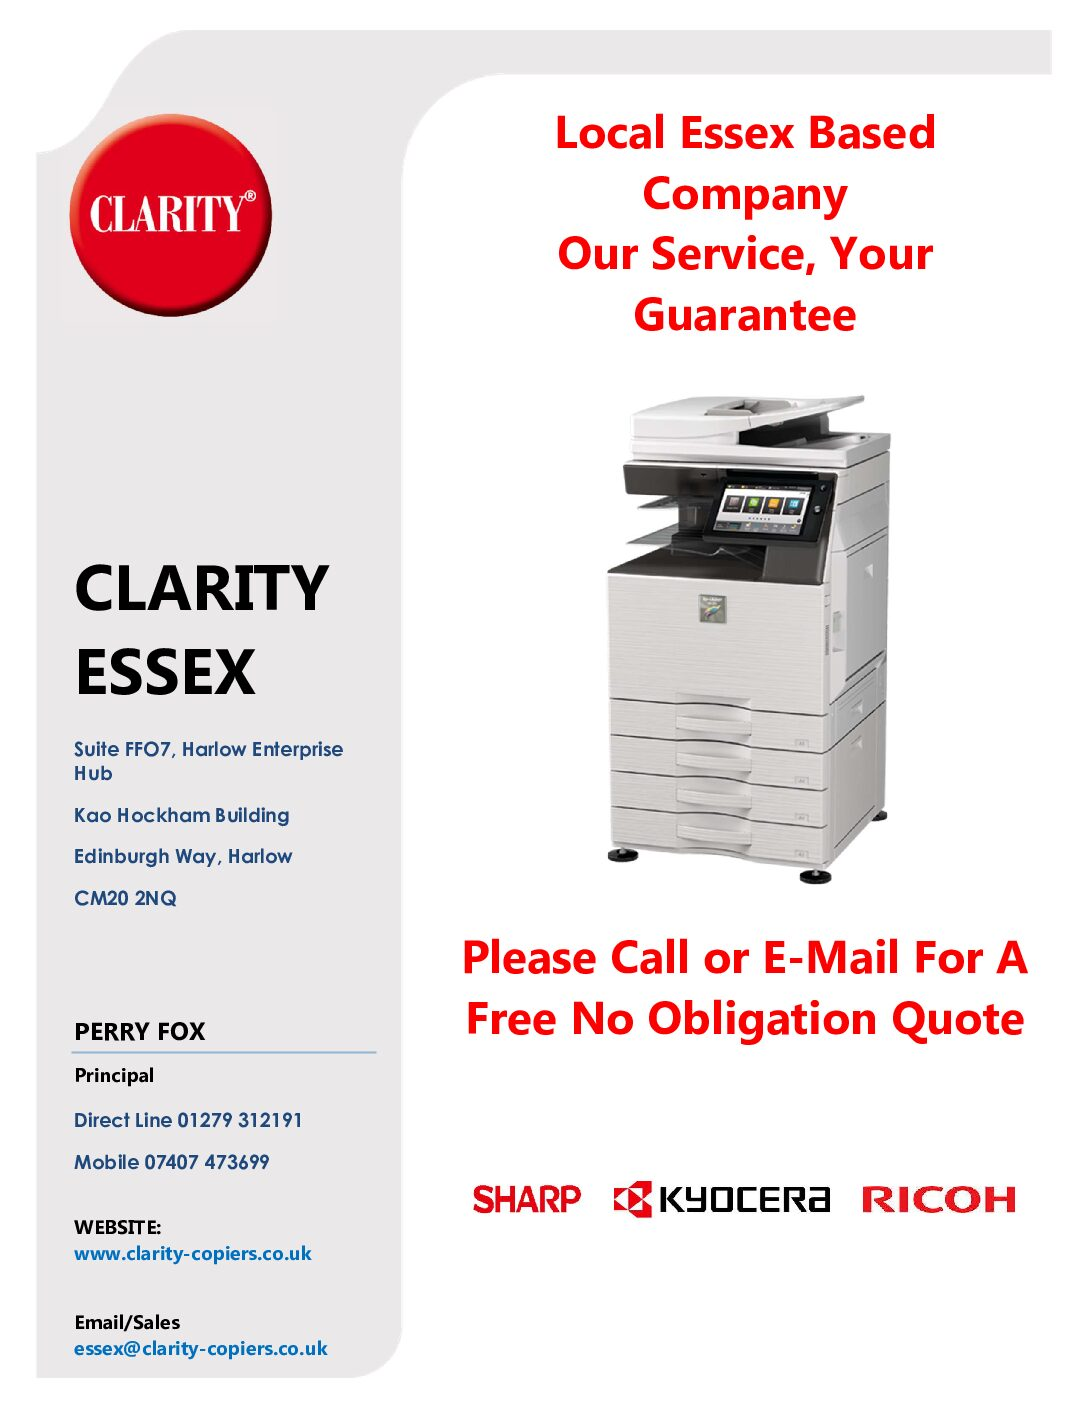 Clarity Essex Photocopiers, Printers, Scanners and associated Software